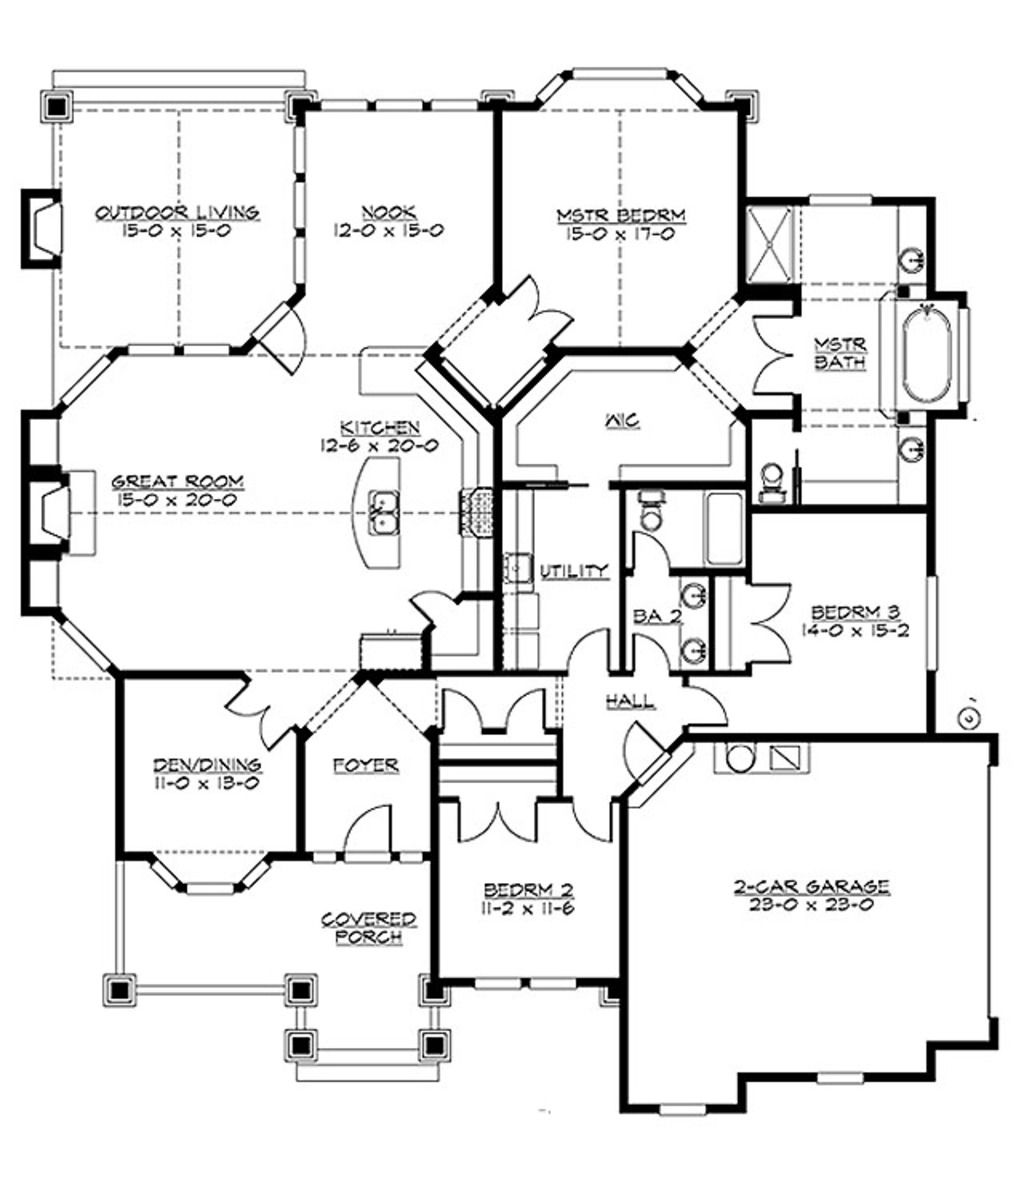 17 Best images about Home House plans1 on Pinterest Craftsman